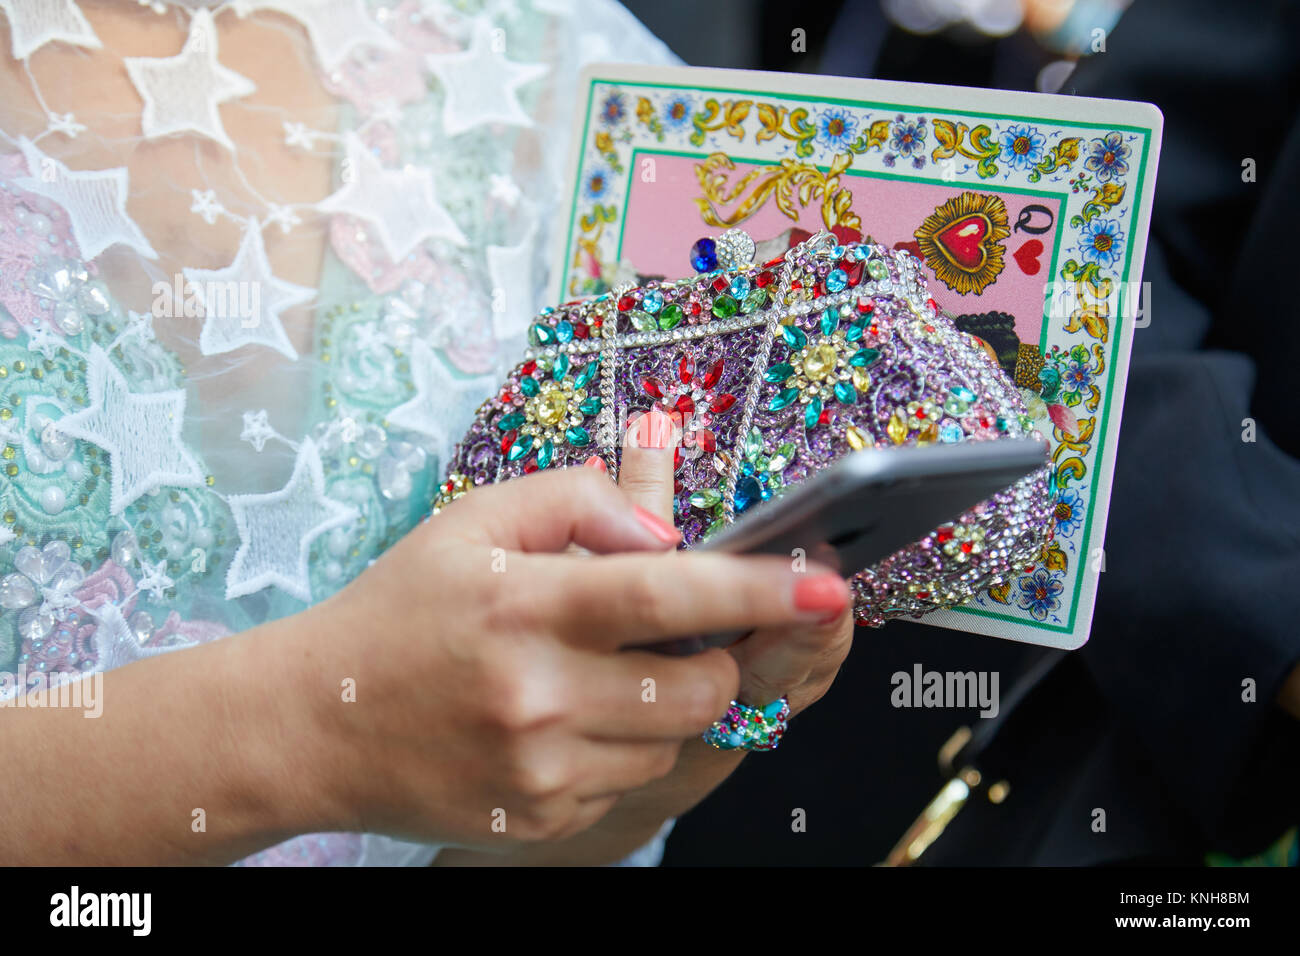 MILAN - SEPTEMBER 24: Woman with bag decorated with colorful gems and beads looking at phone before Dolce and Gabbana - Stock Image